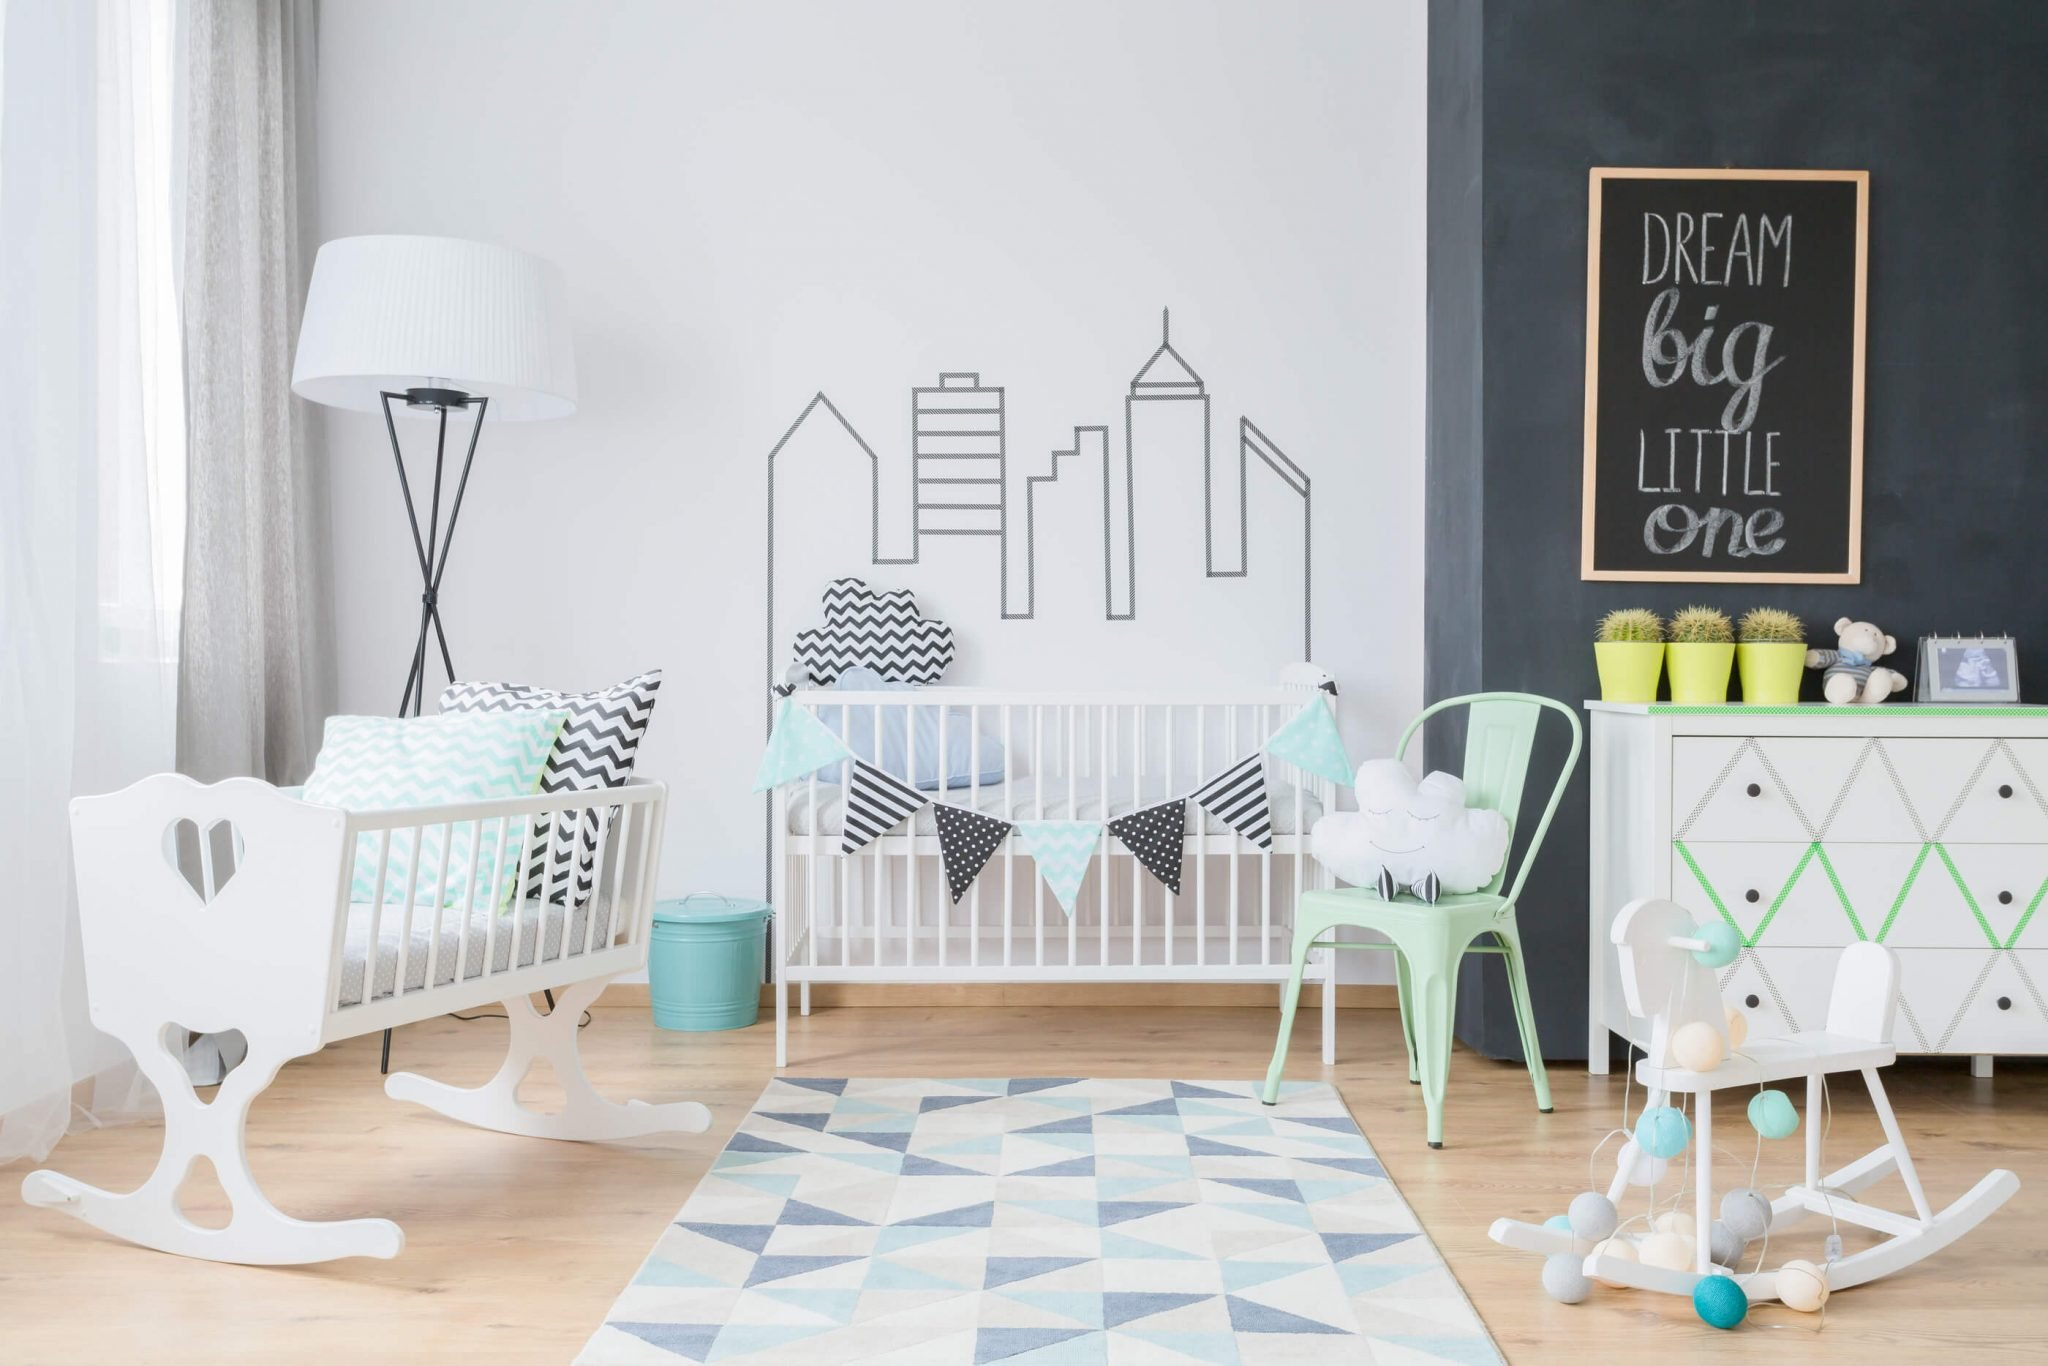 55 Wonderful Baby Boy Room Ideas For